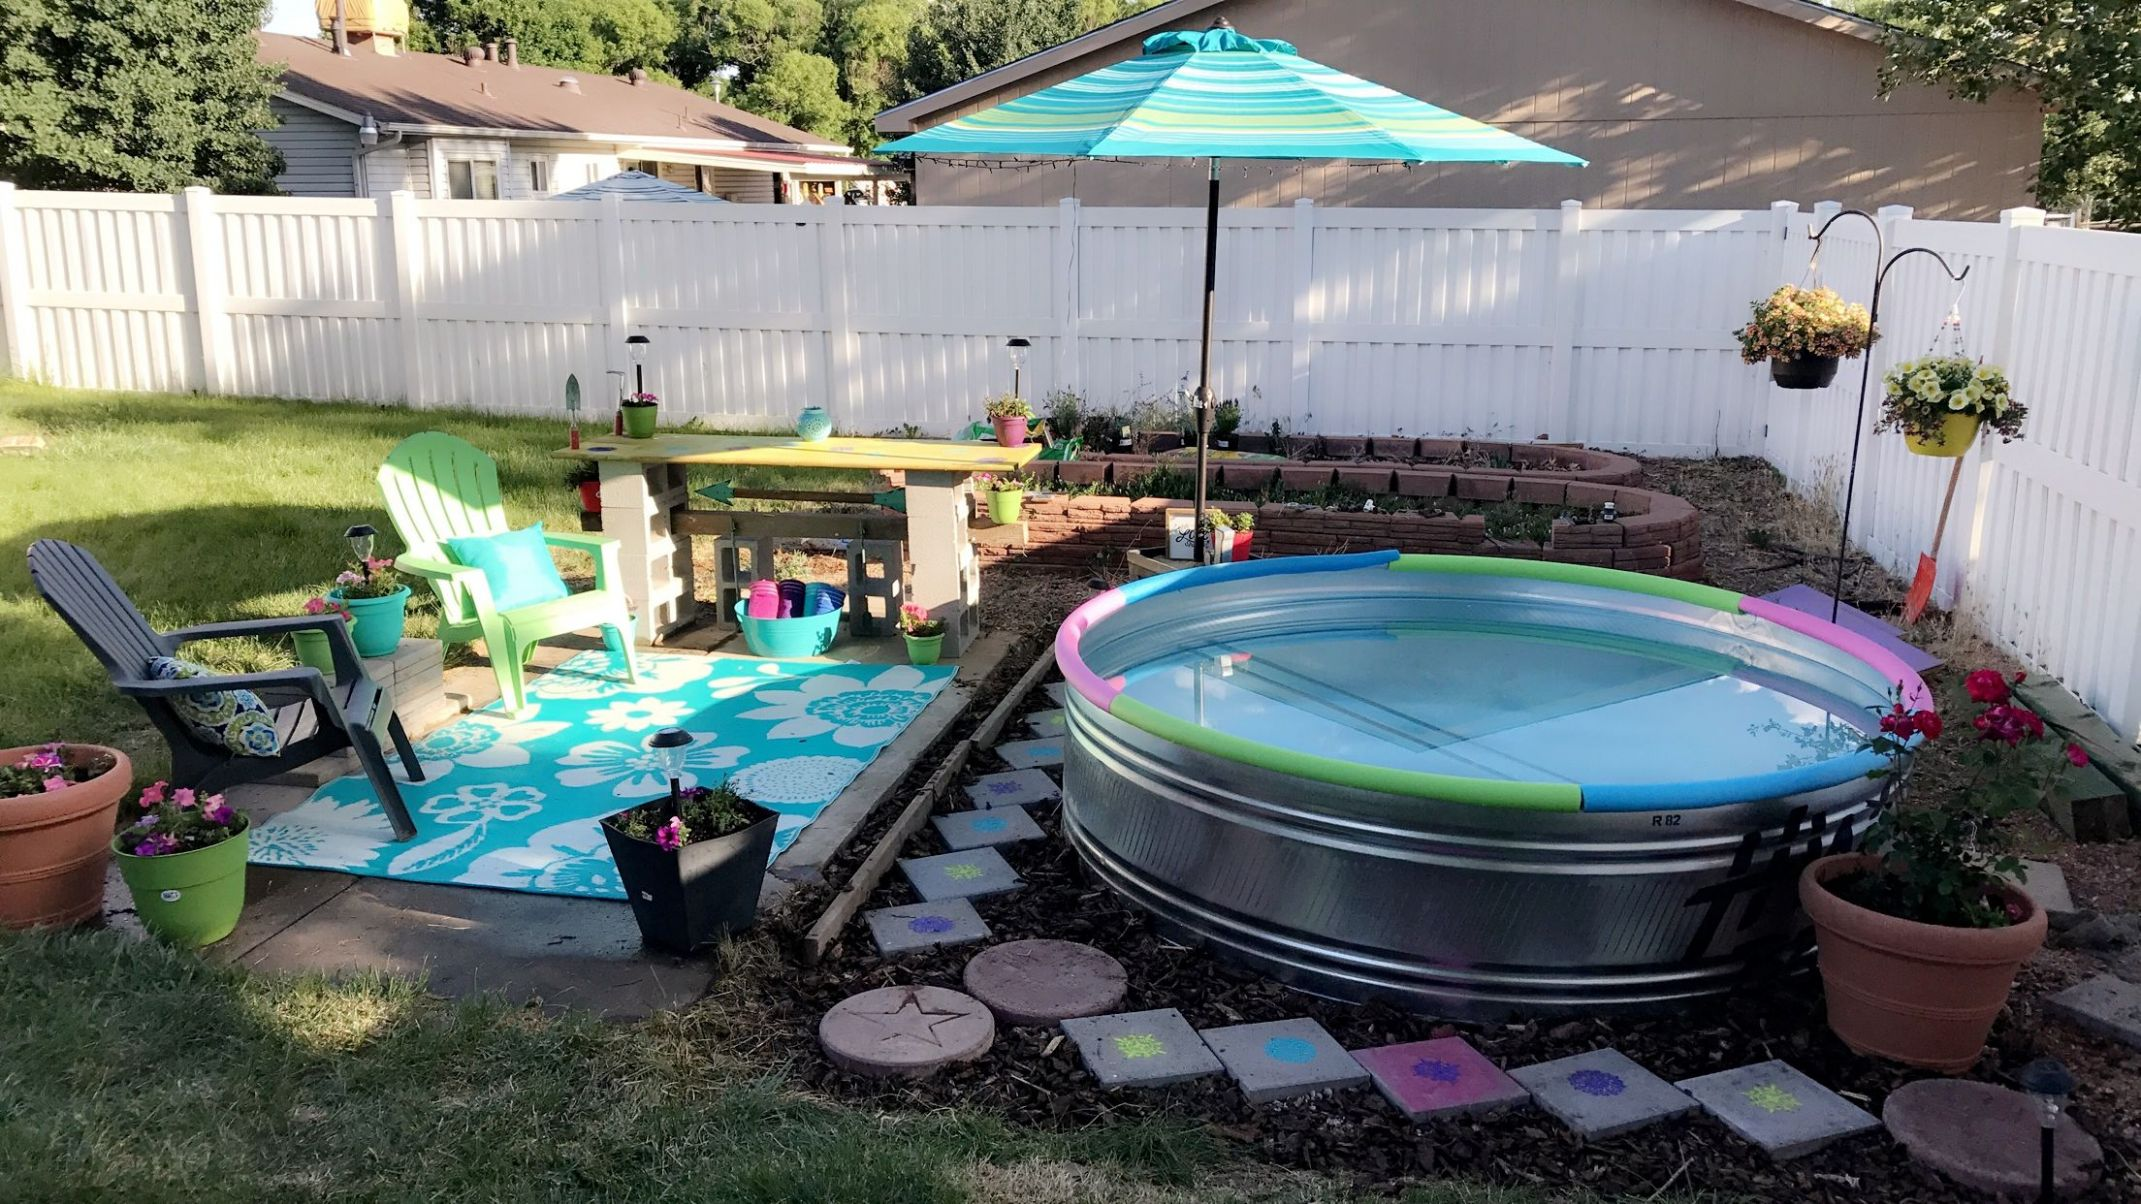 My own backyard dream thanks to Pinterest stock tank pool ..